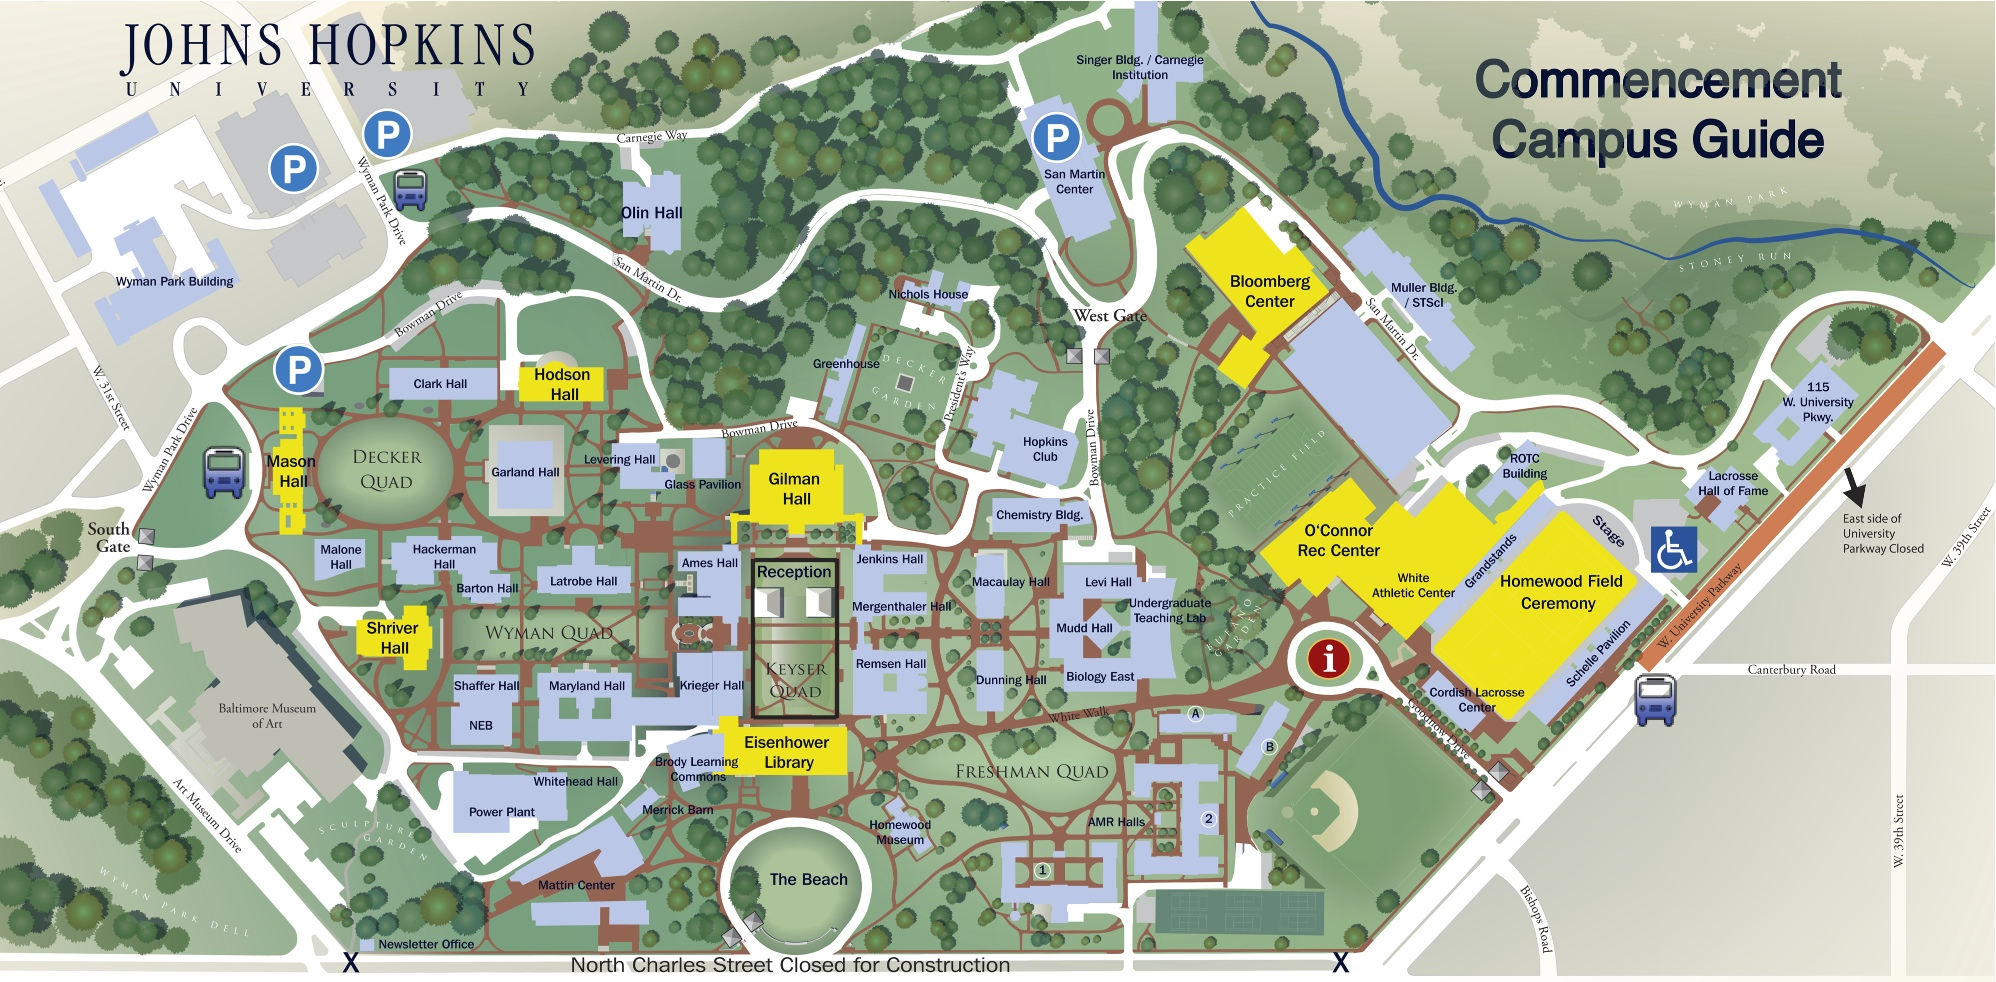 Johns Hopkins Campus Map Jhu Campus Map | States Maps